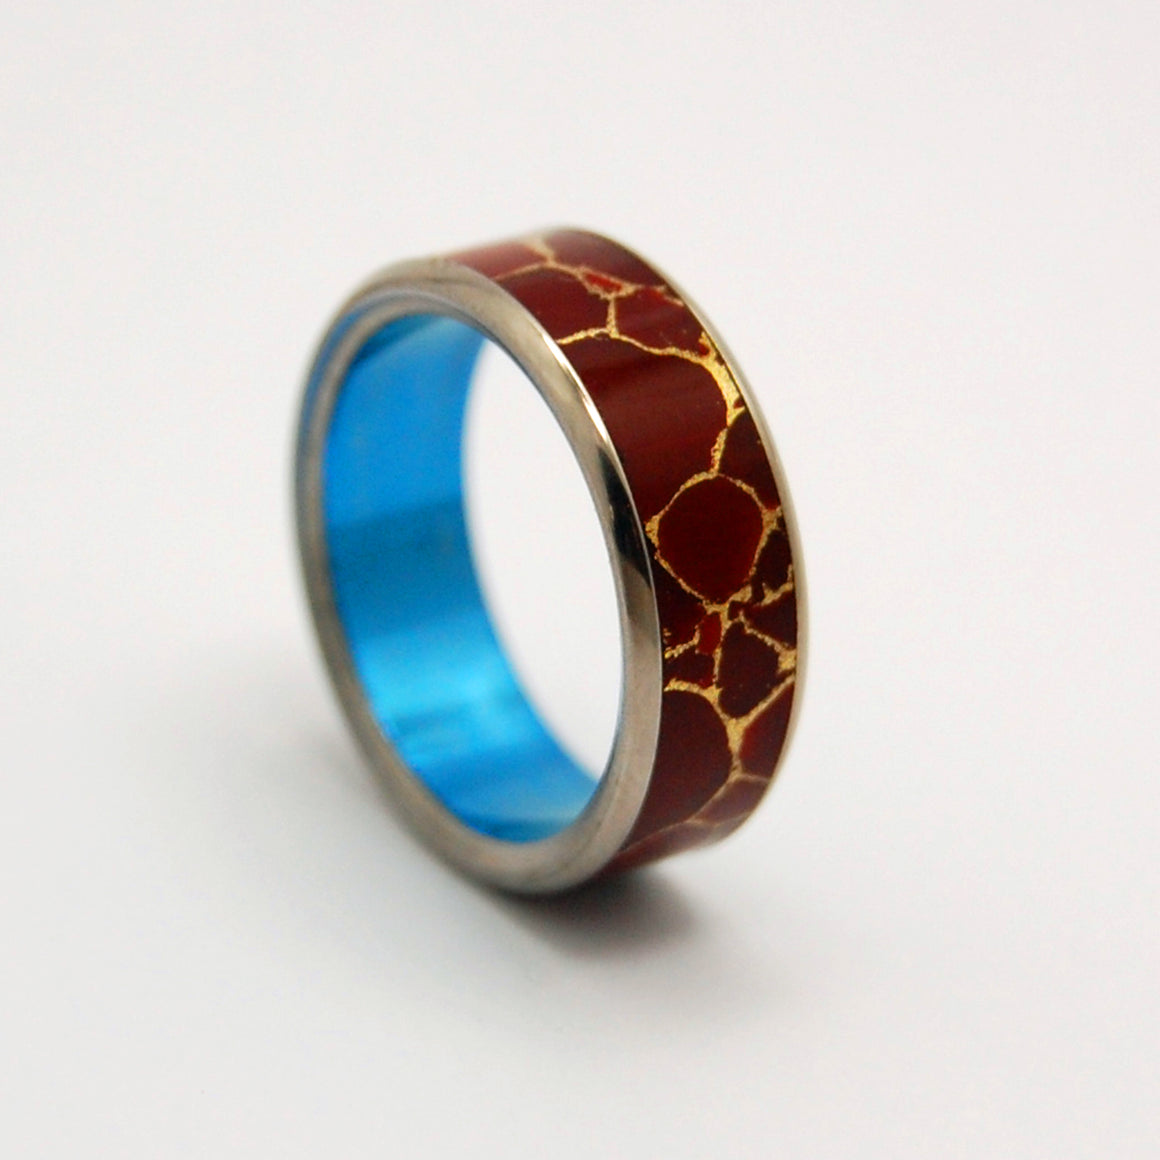 STONE OF ENDURANCE BLUE | Red Jasper Stone & Titanium - Unique Wedding Rings - Women's Wedding Rings - Minter and Richter Designs